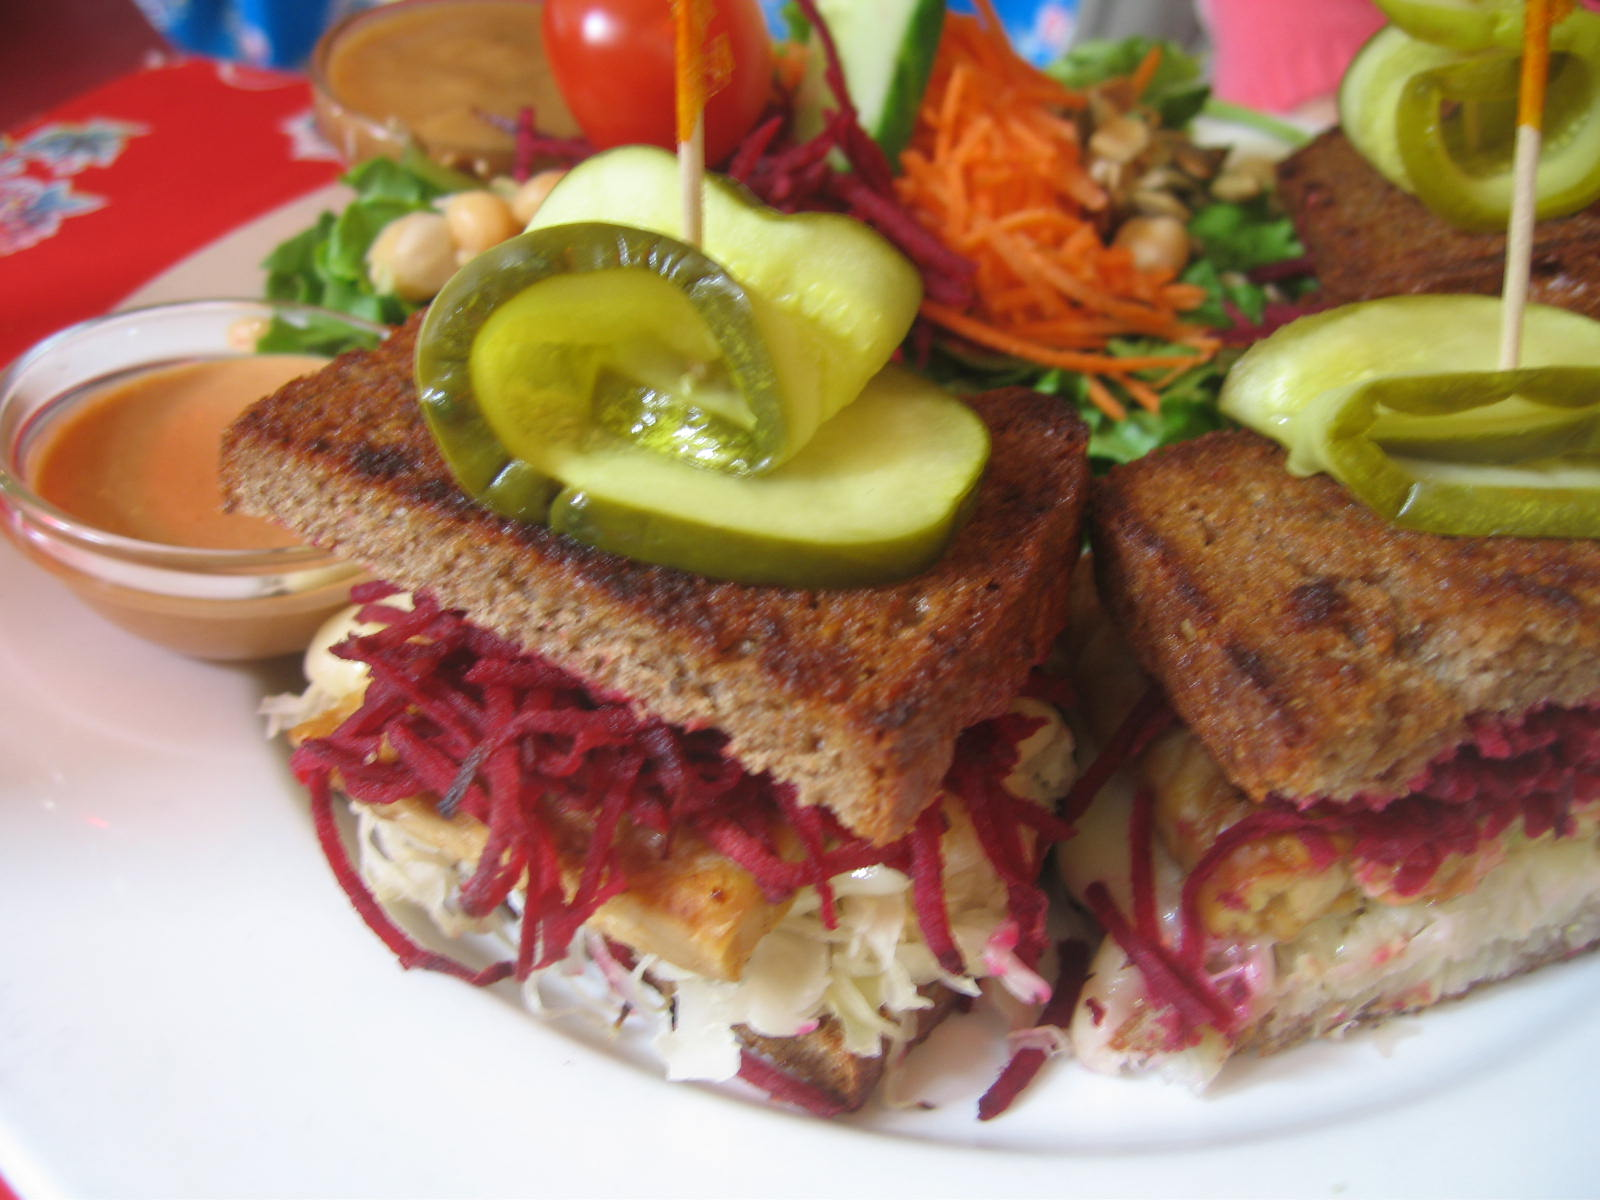 Tempeh Reuben with sauerkraut, pickled beets, and mustard. My mom loved it. I was a little jealous, not going to lie.